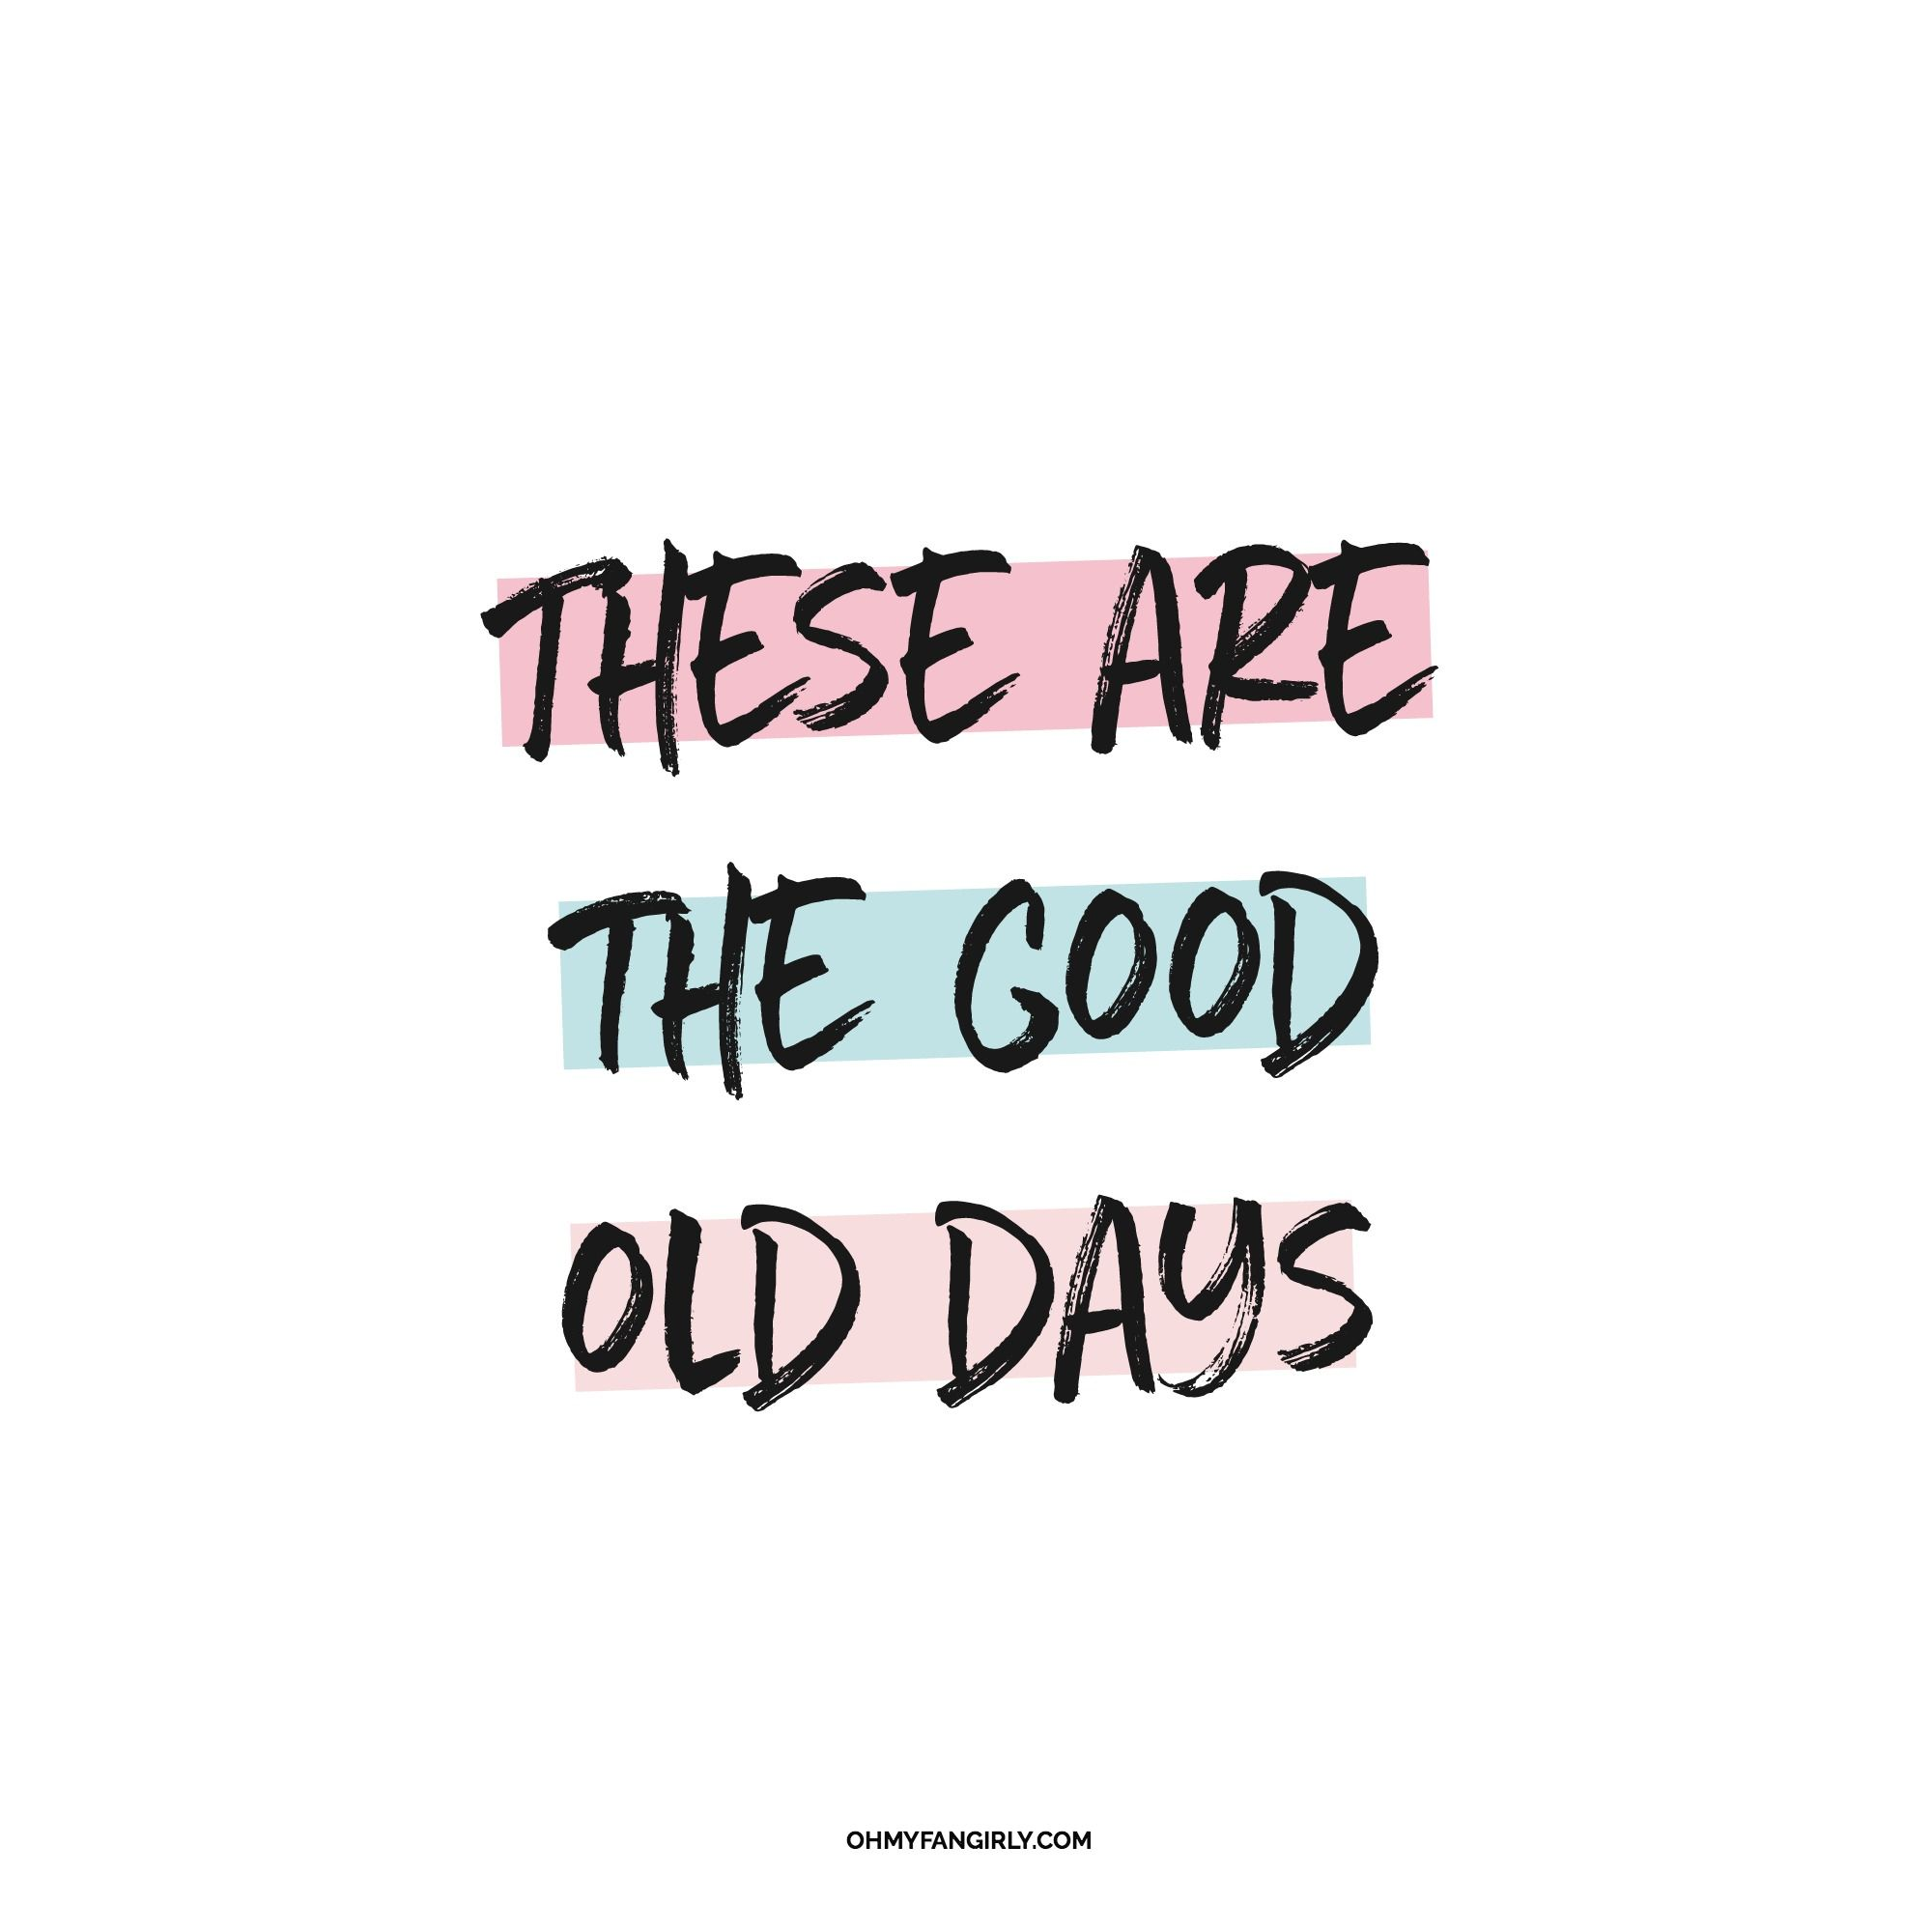 I Ve Been Loving Macklemore S New Song Good Old Days Lately And It Got Me Thinking That One Day T Good Times Quotes Memories Quotes Making Memories Quotes